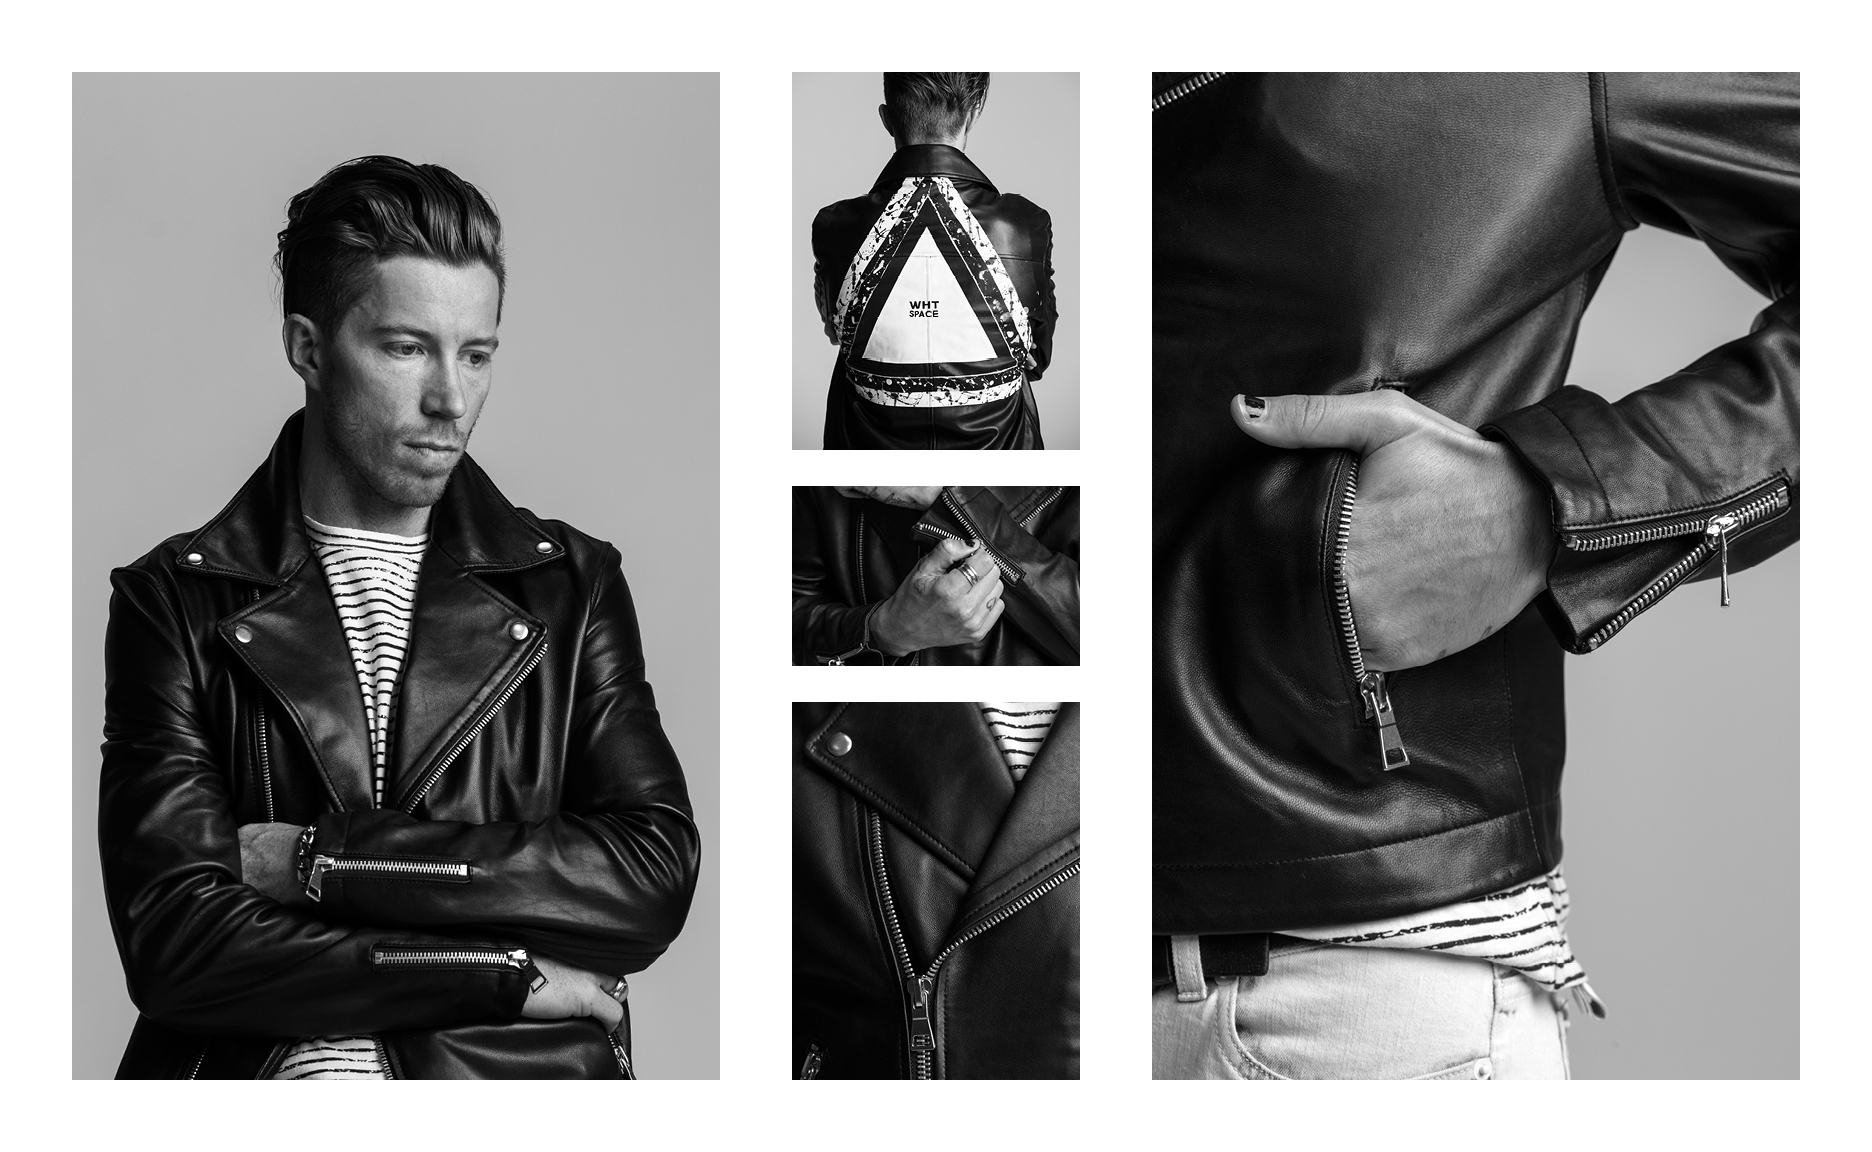 First Look Shaun Whites Wht Space Clothing Line Mens Journal